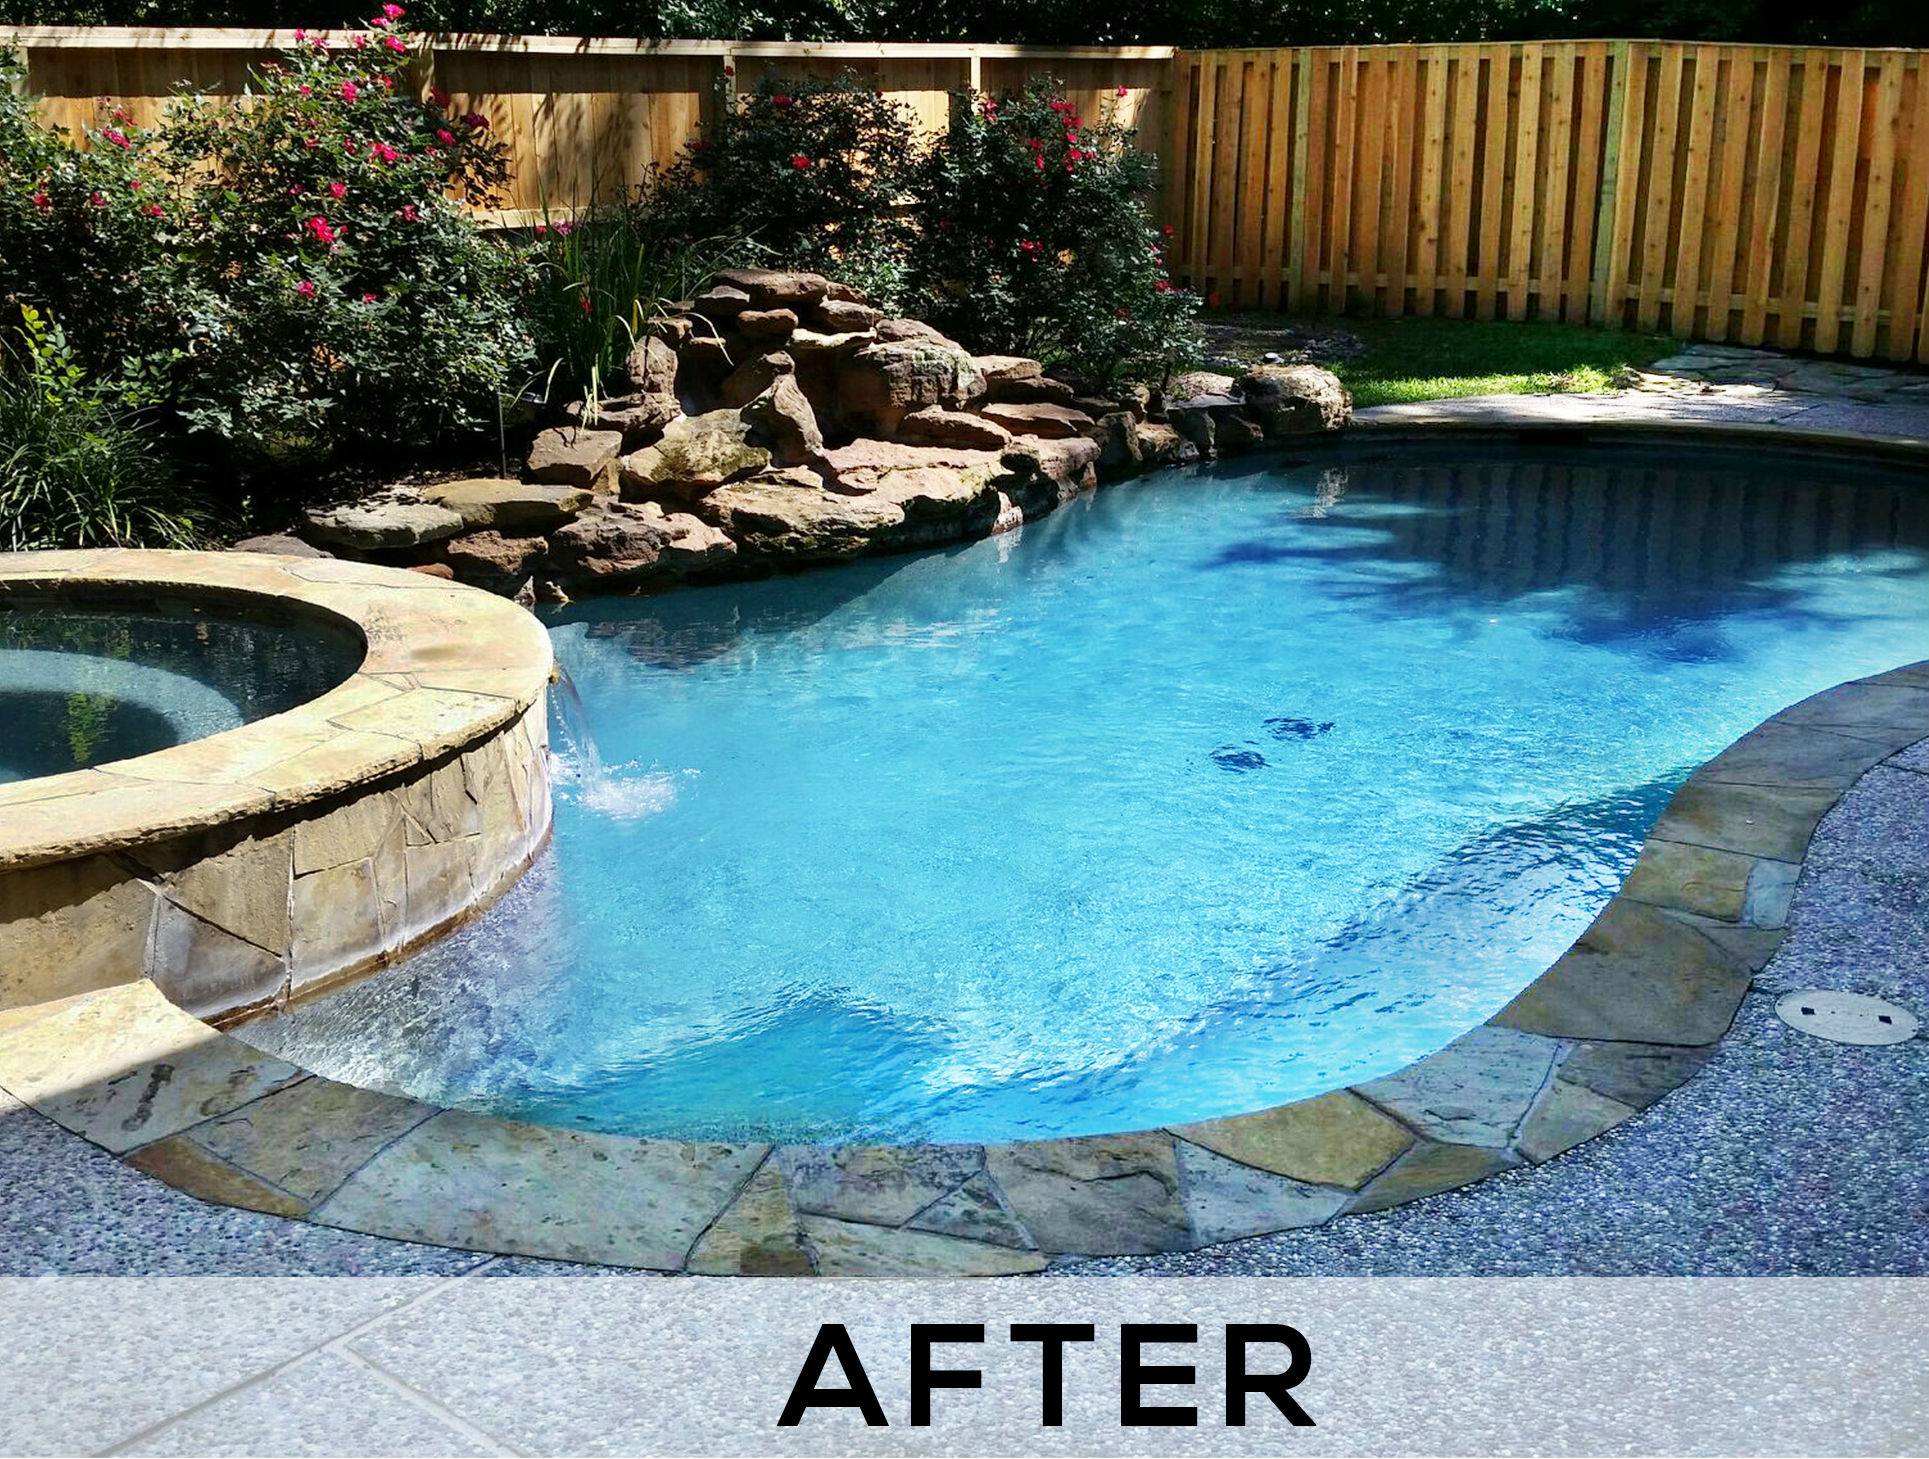 Pool Renovations Service - After